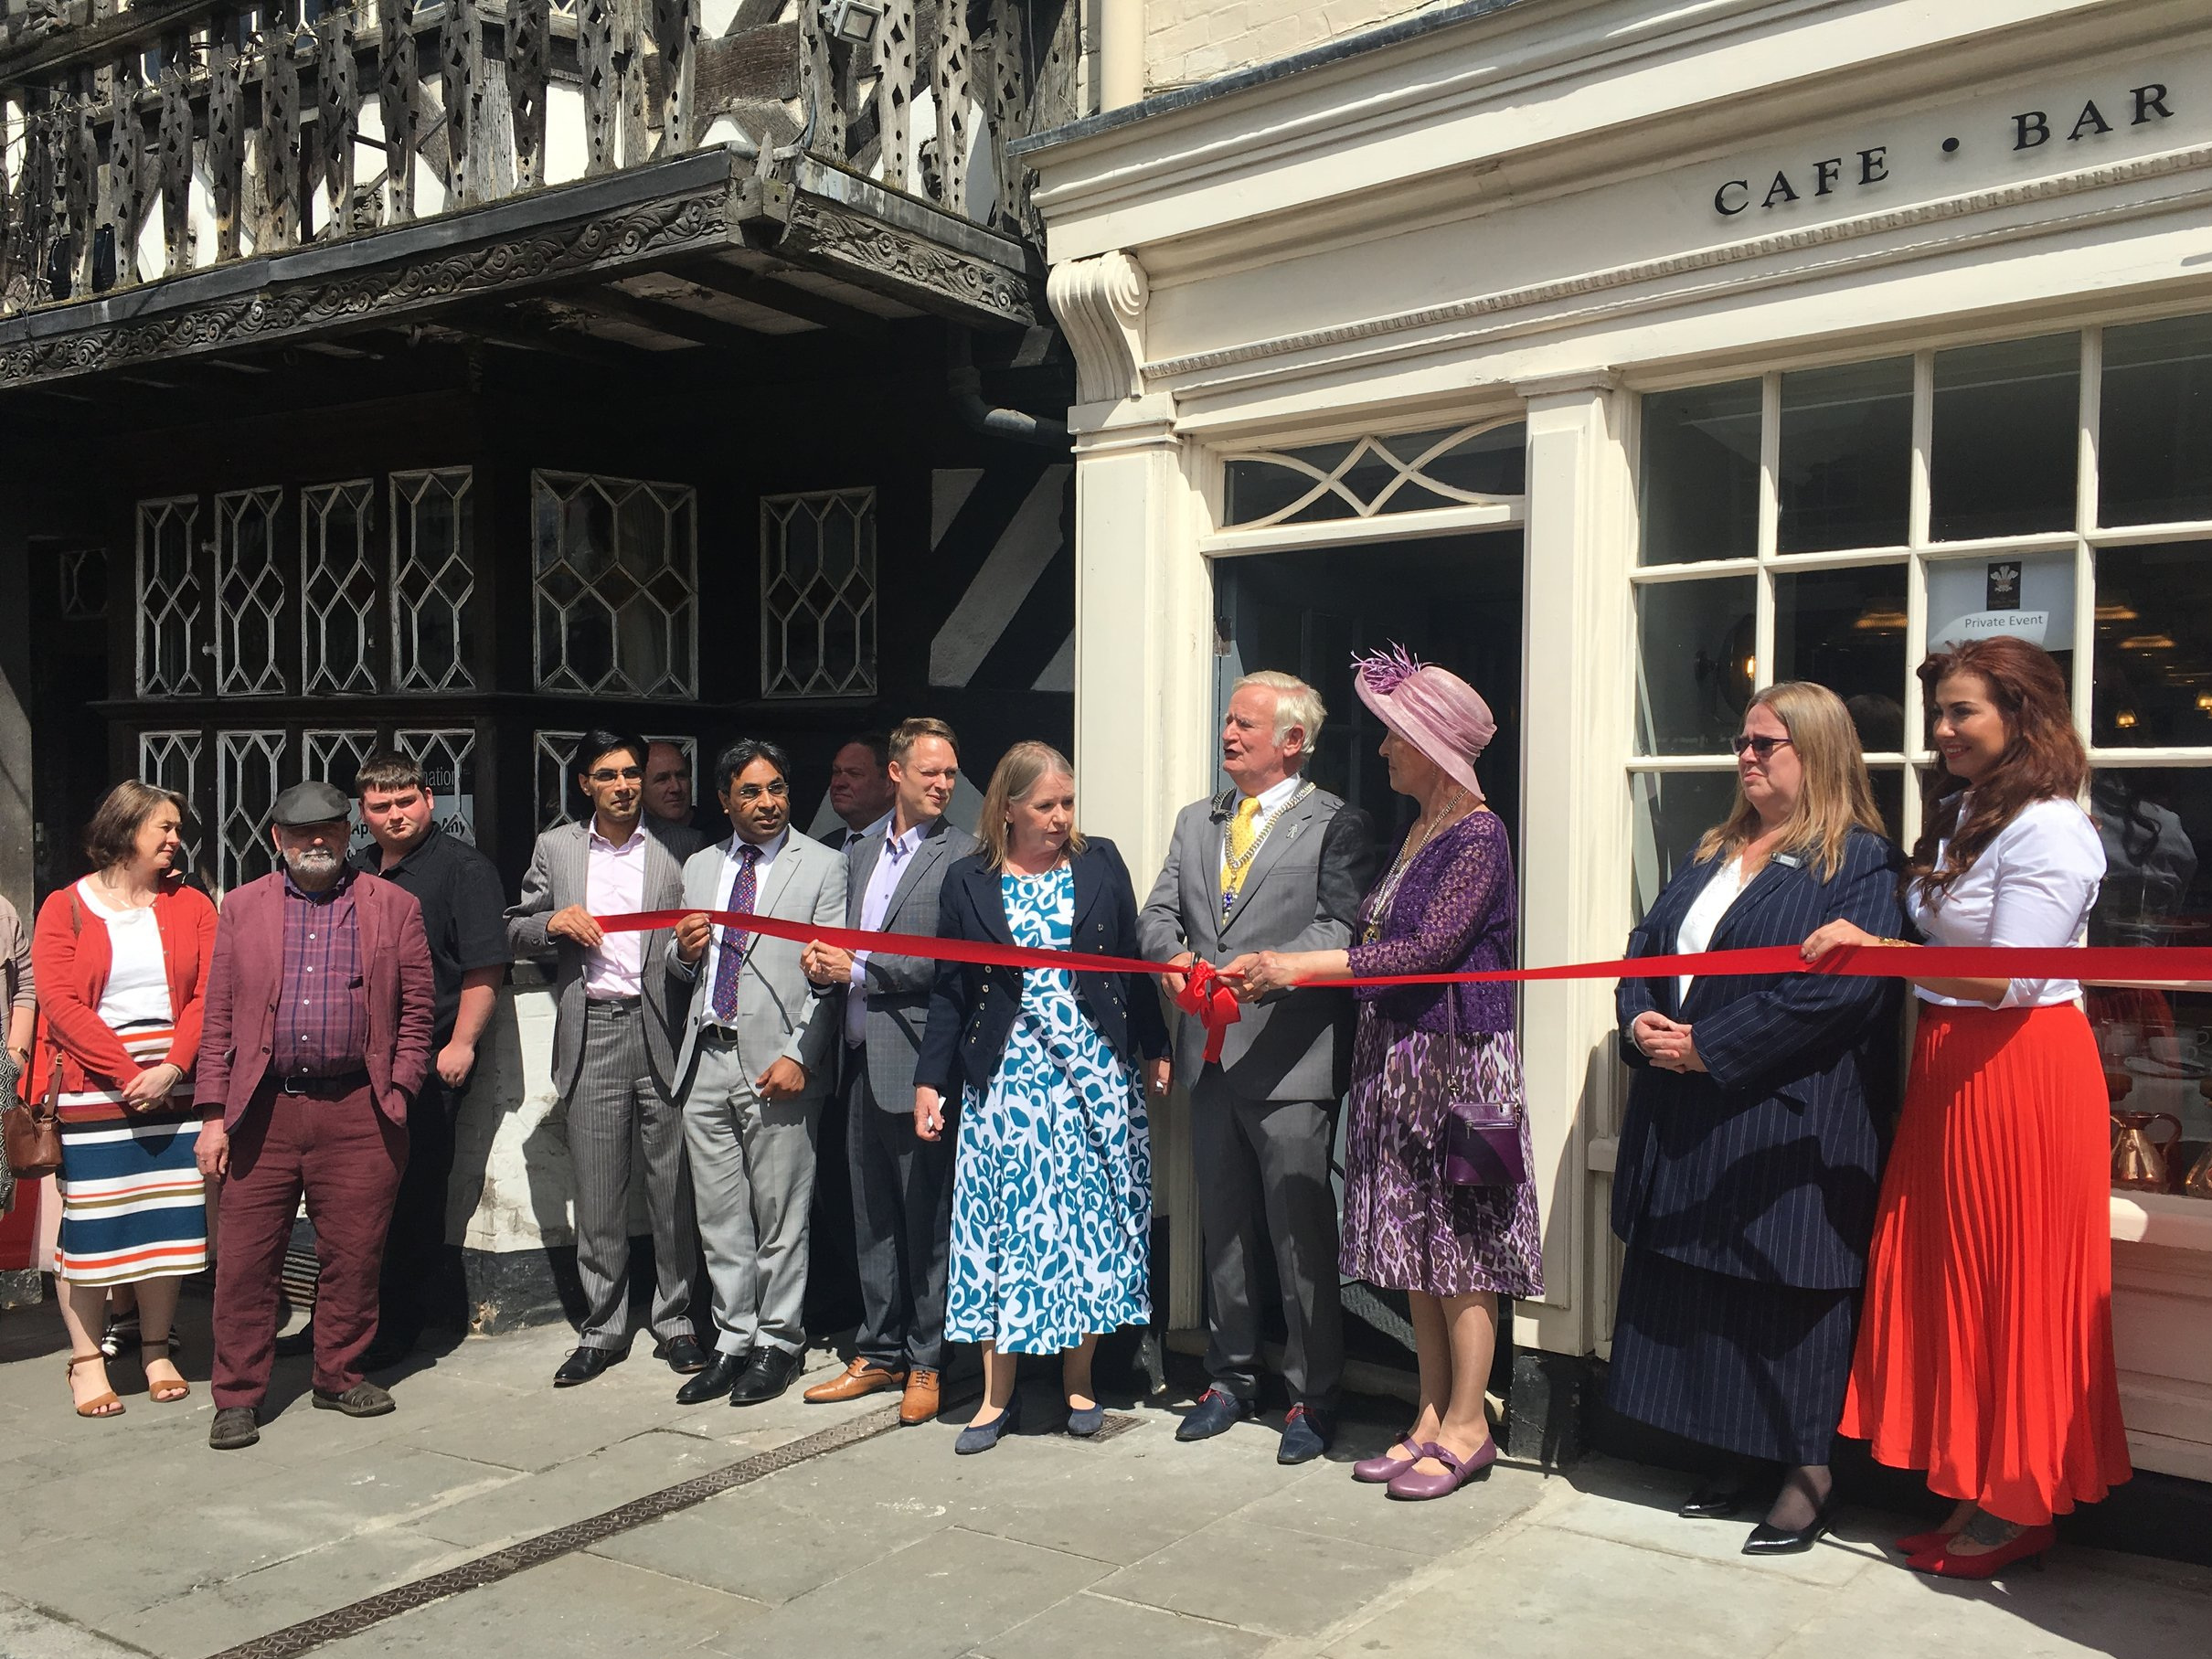 Ribbon cutting ceremony for The Feathers Hotel newly opened Tea Room